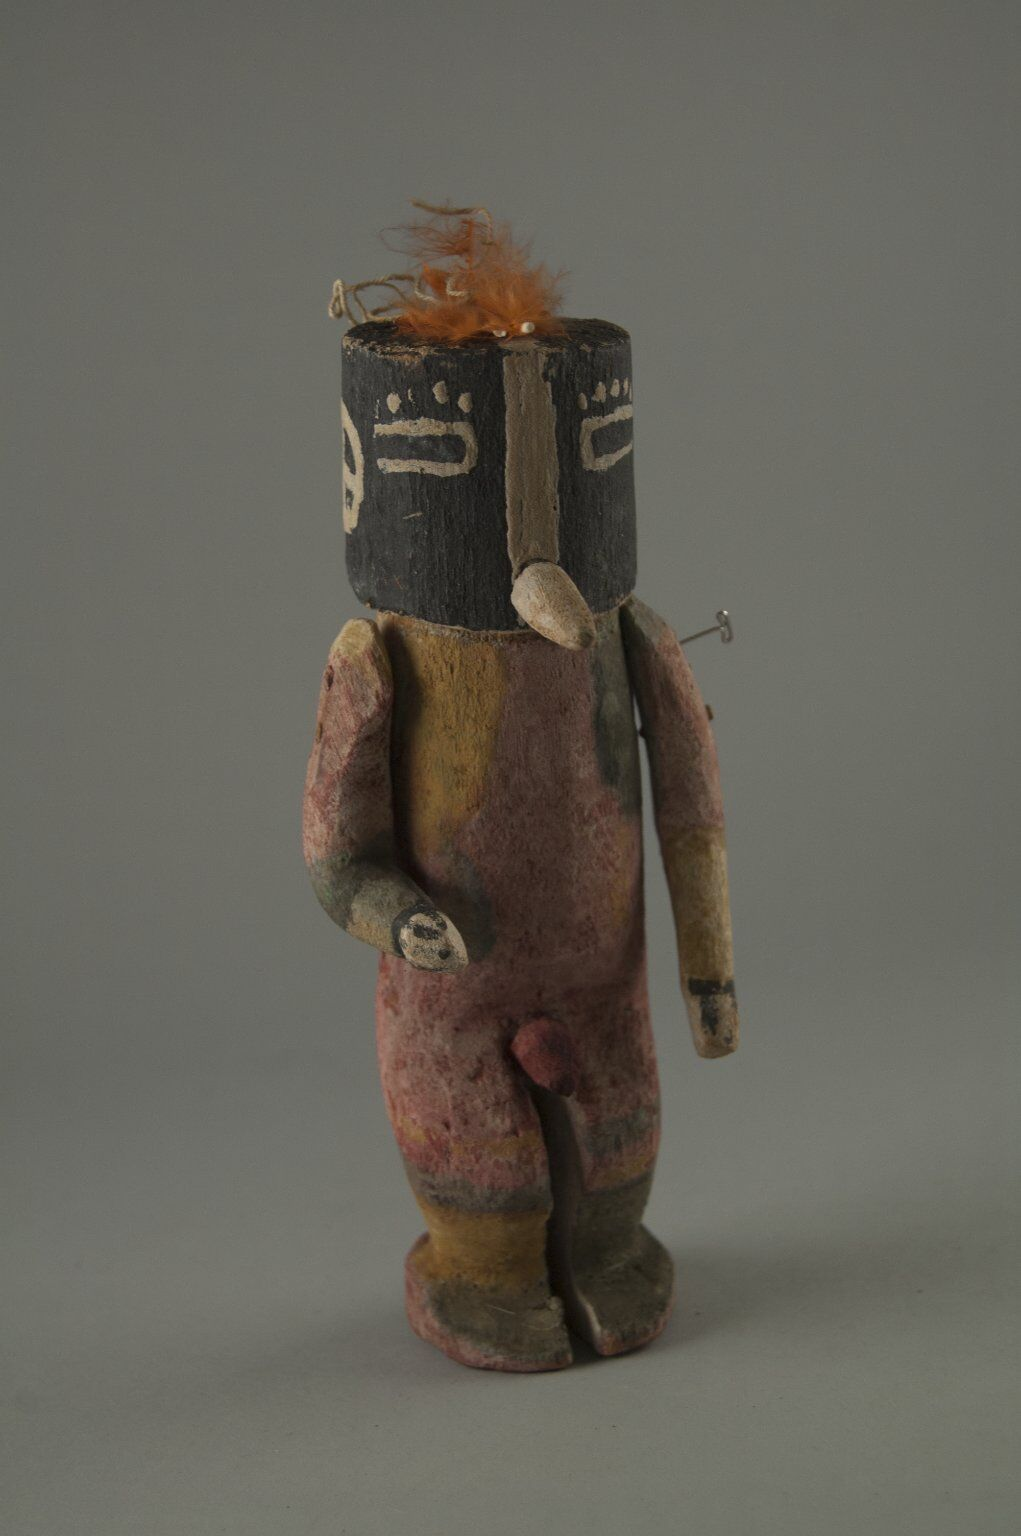 Hopi Pueblo (Native American), Kachina Doll (Kokopol, Kokopelli), late 19th century. Photo via the Brooklyn Museum.